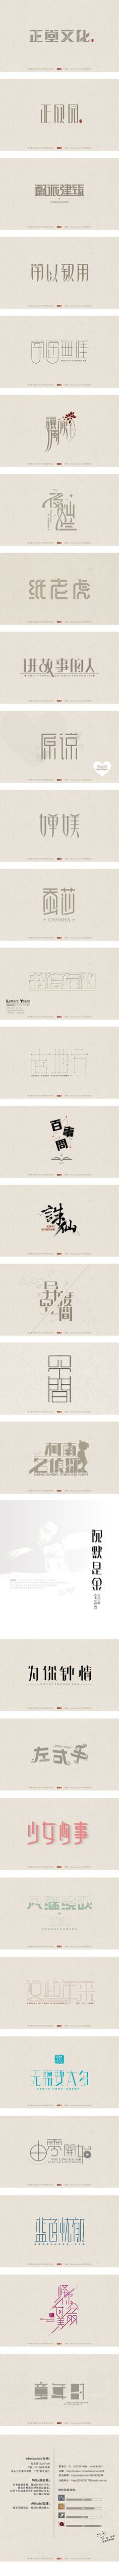 陈志贤 2013年 字体设计 标志设计 ... Chinese Fonts Design, Graphic Design Fonts, Font Design, Typographic Design, Lettering Design, Poster Fonts, Typography Fonts, Font Art, Japanese Typography